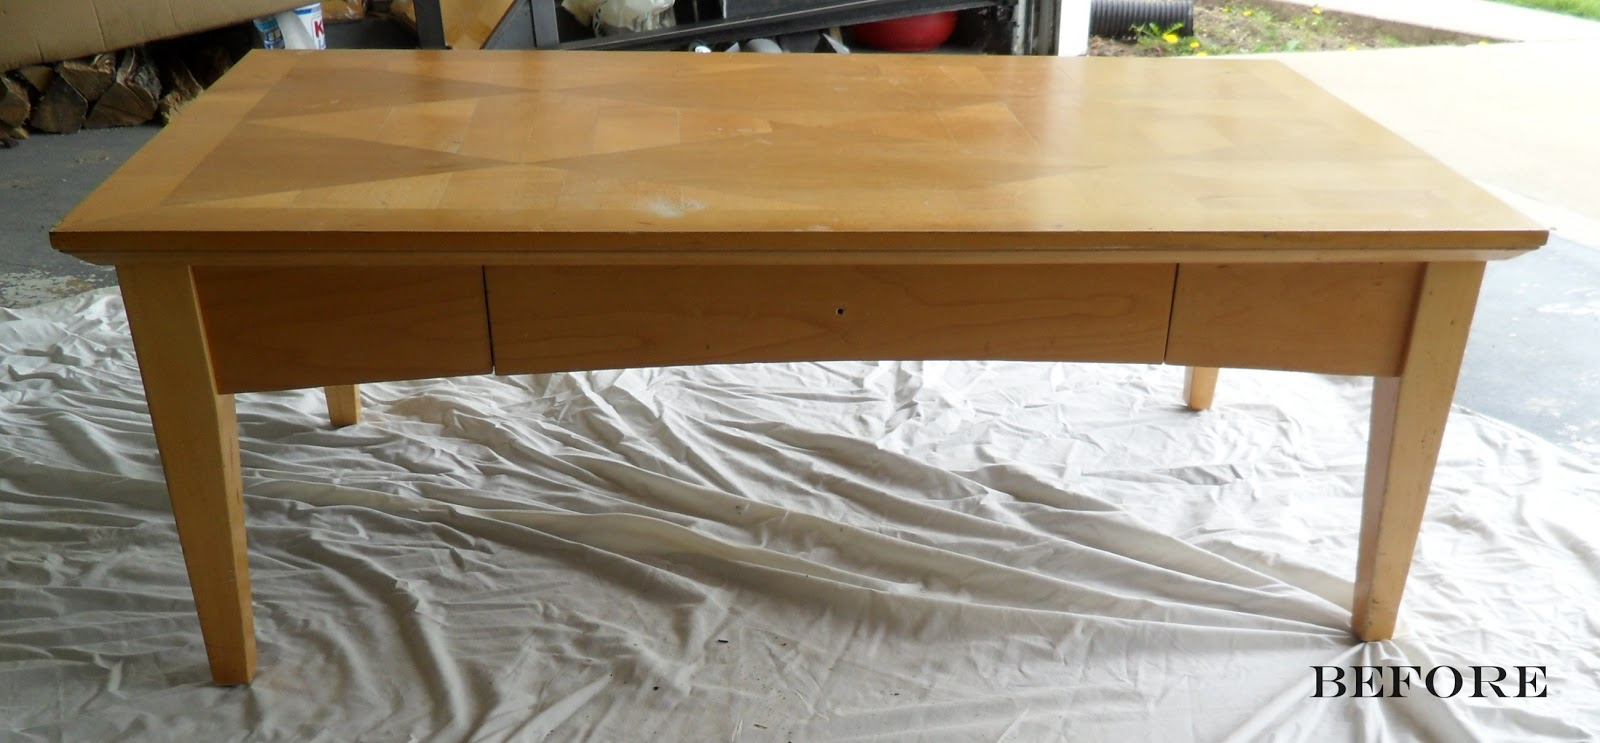 Light Colored Wood Coffee Table.Light Colored Wood Coffee Table Hipenmoeder Nl